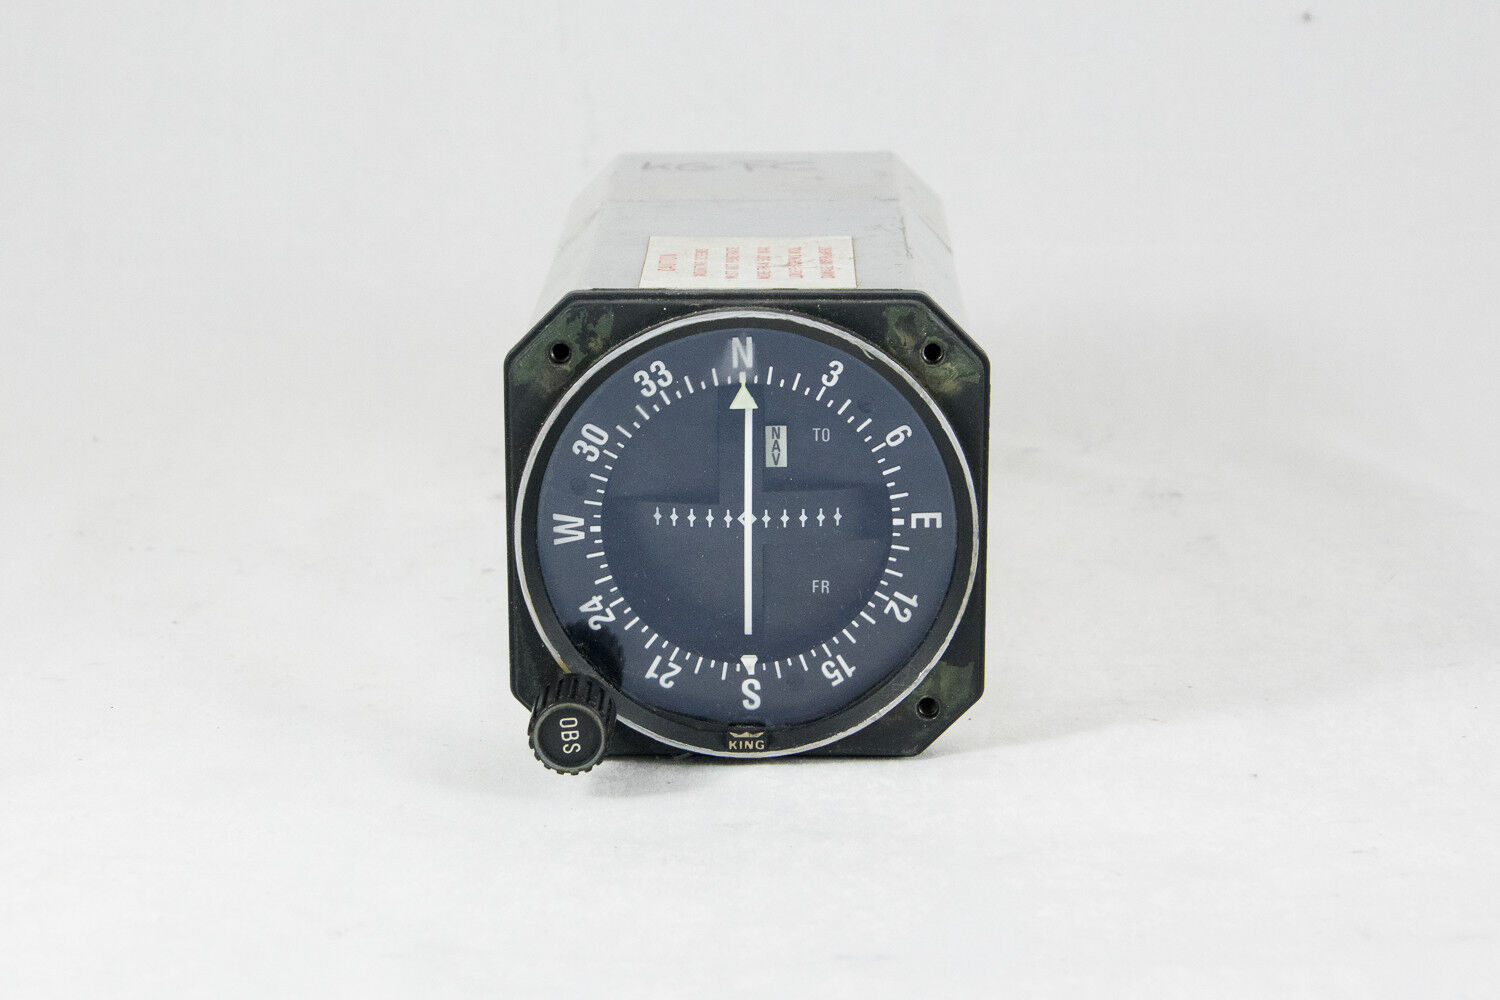 Bendix/King KI-203 VOR/LOC Indicator PN: 066-3034-00 SN: 14686, Guaranteed